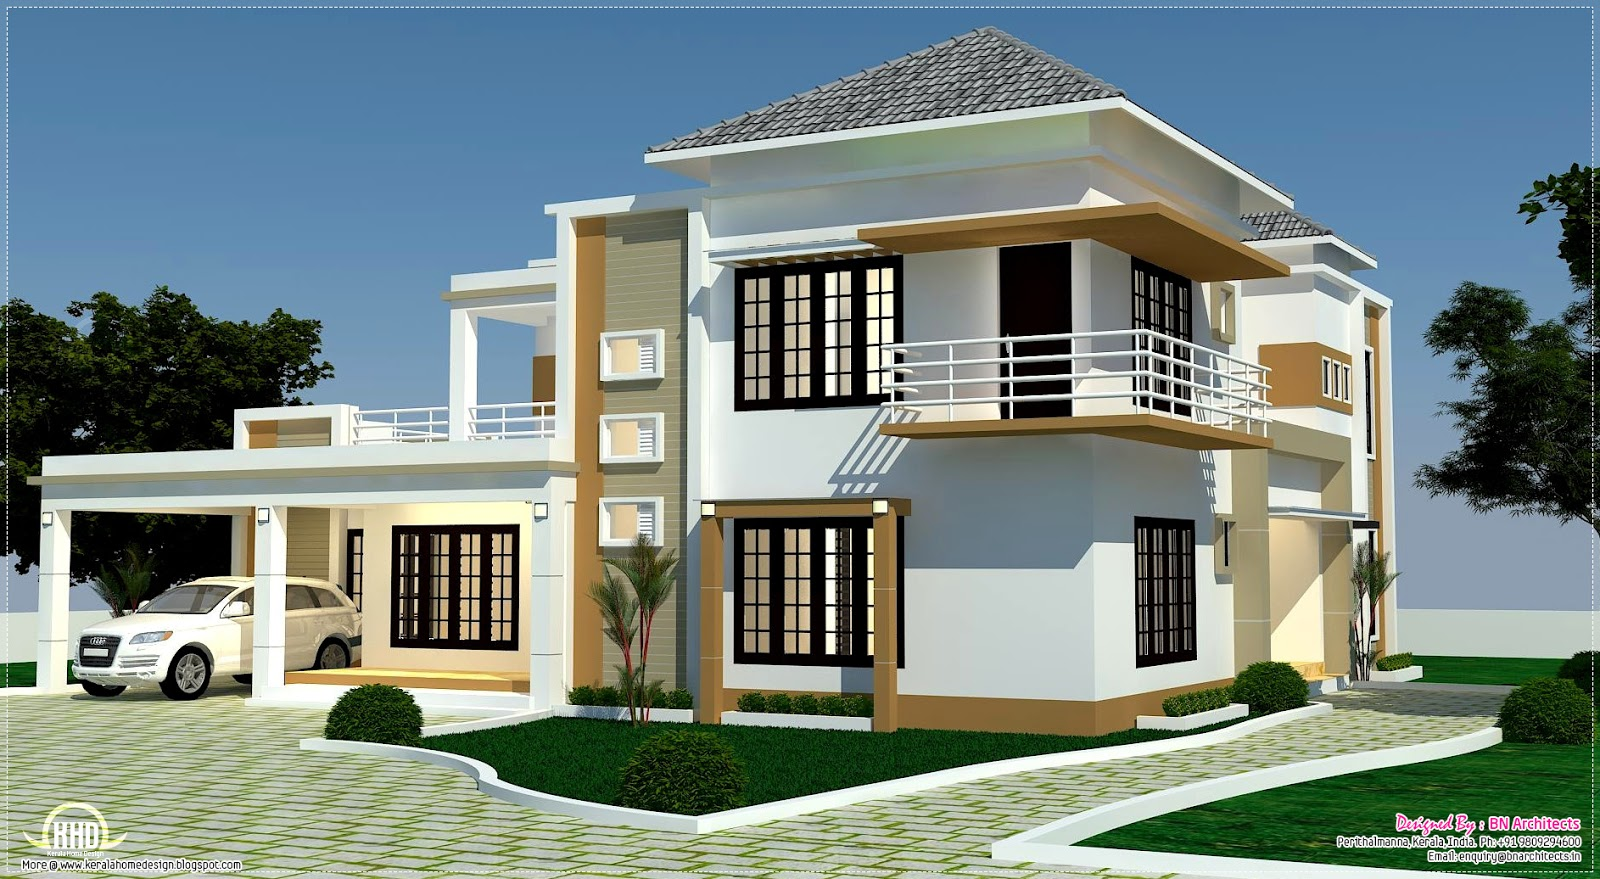 Floor plan 3d views and interiors of 4 bedroom villa for View house plans online